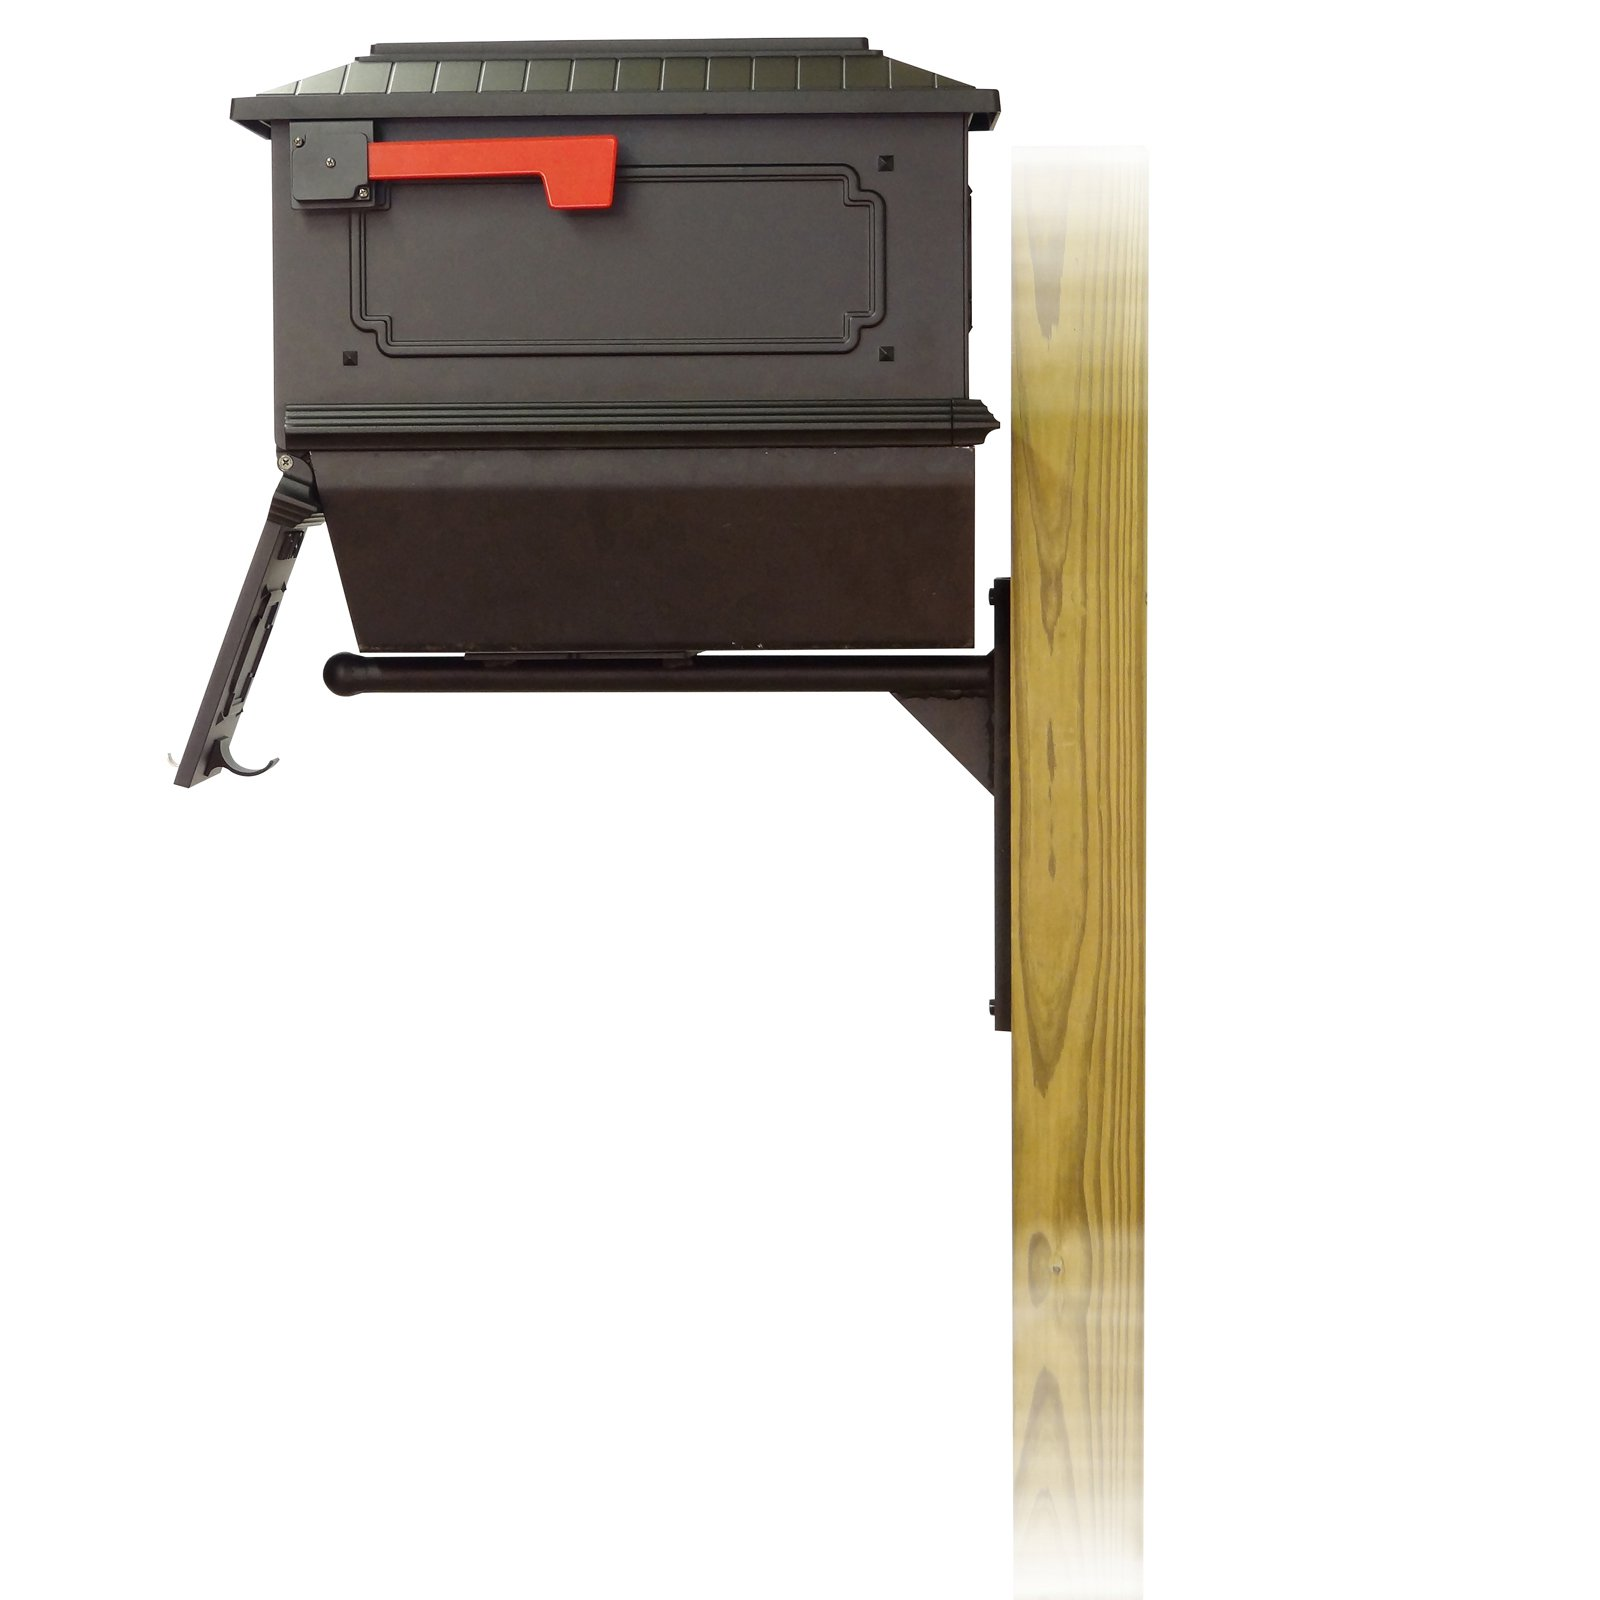 Picture of: Special Lite Products Tc Ash Fs 2017 Blk Kingston Curbside Mailbox With Newspaper Tube Ashley Front Single Mailbox Mounting Bracket Black Walmart Com Walmart Com